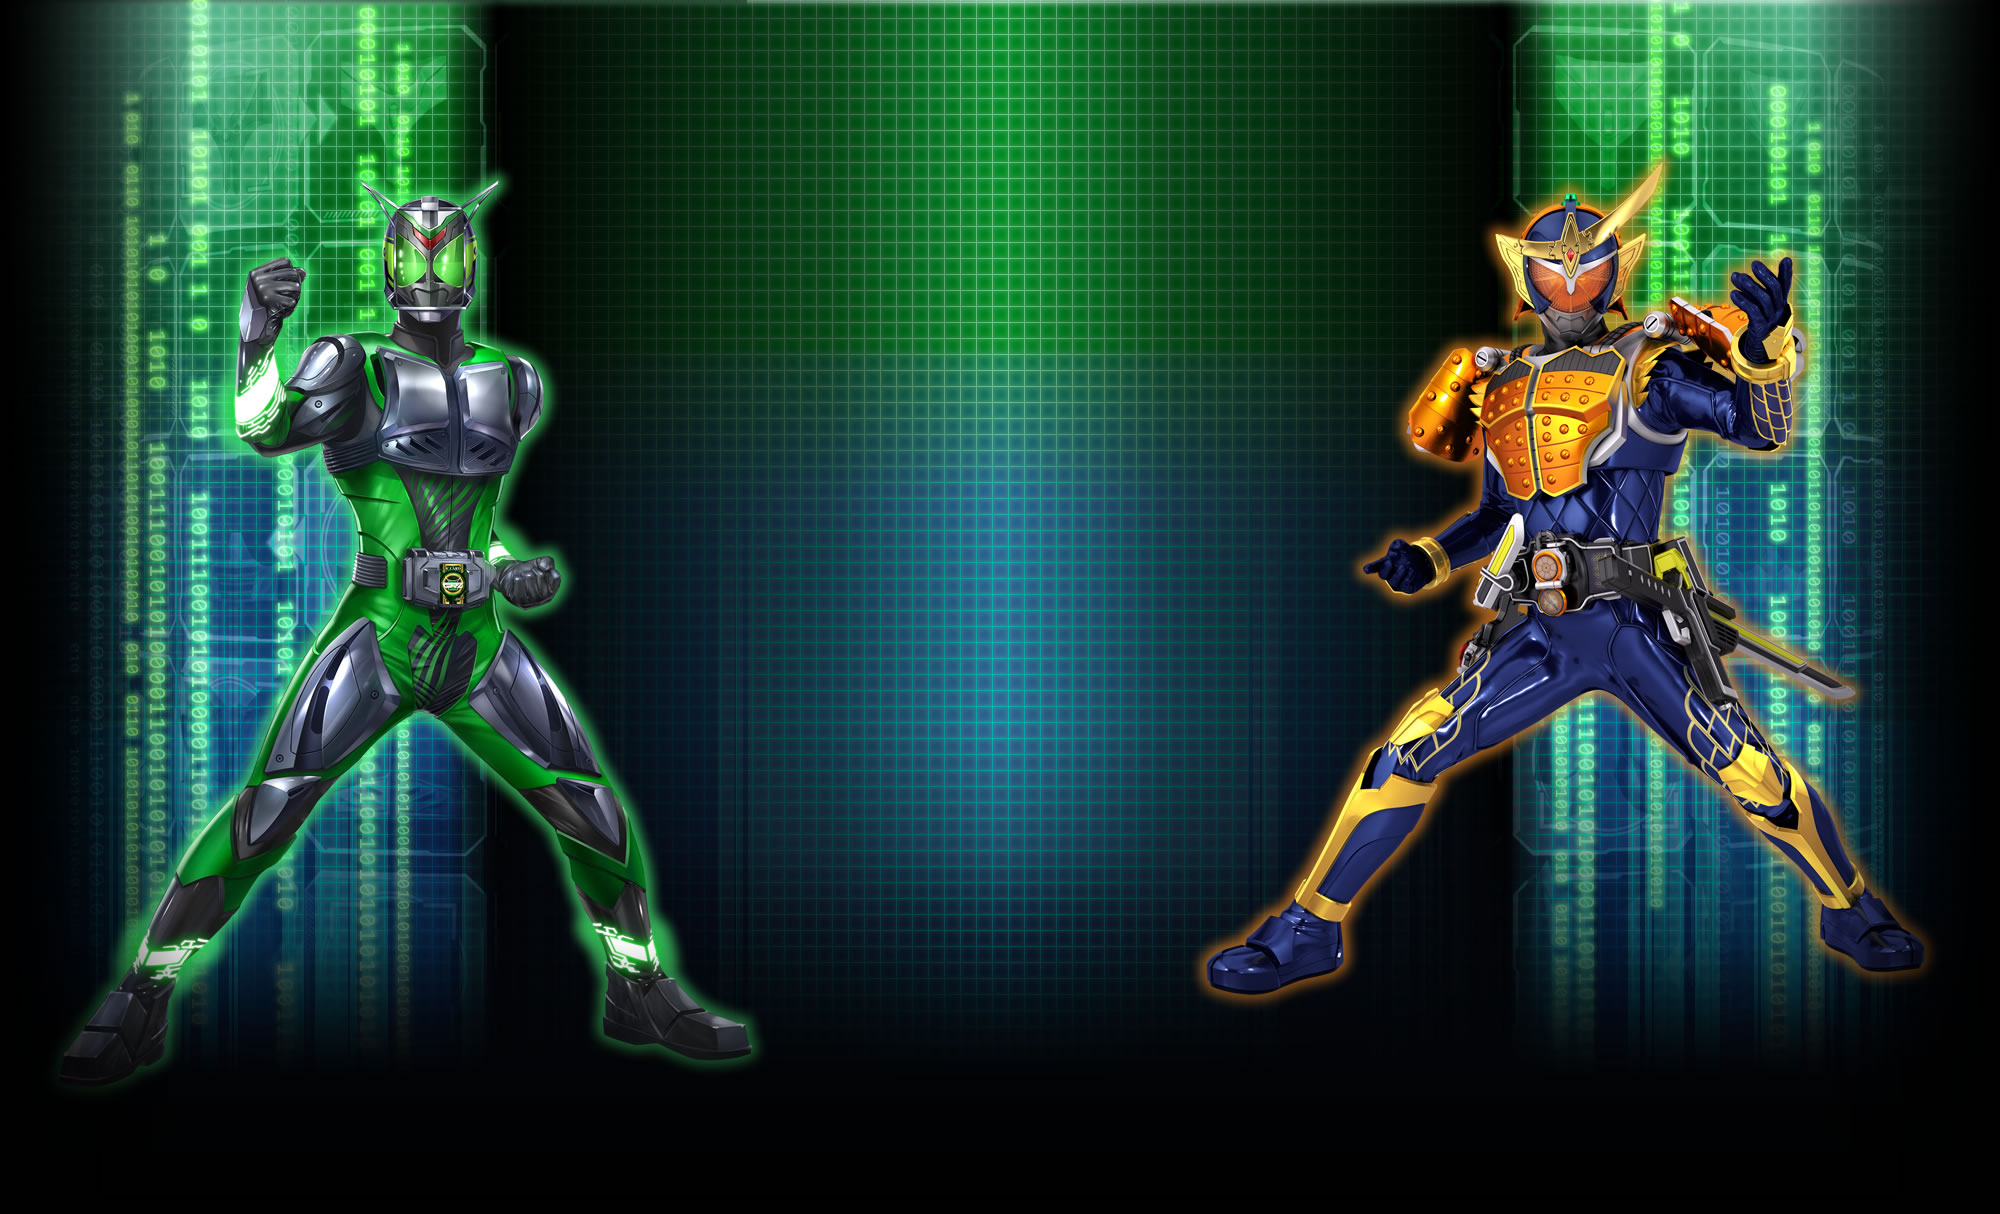 Ganbarizing Wallpaper Gaim and Ganbarizing Rider by Kamen ...